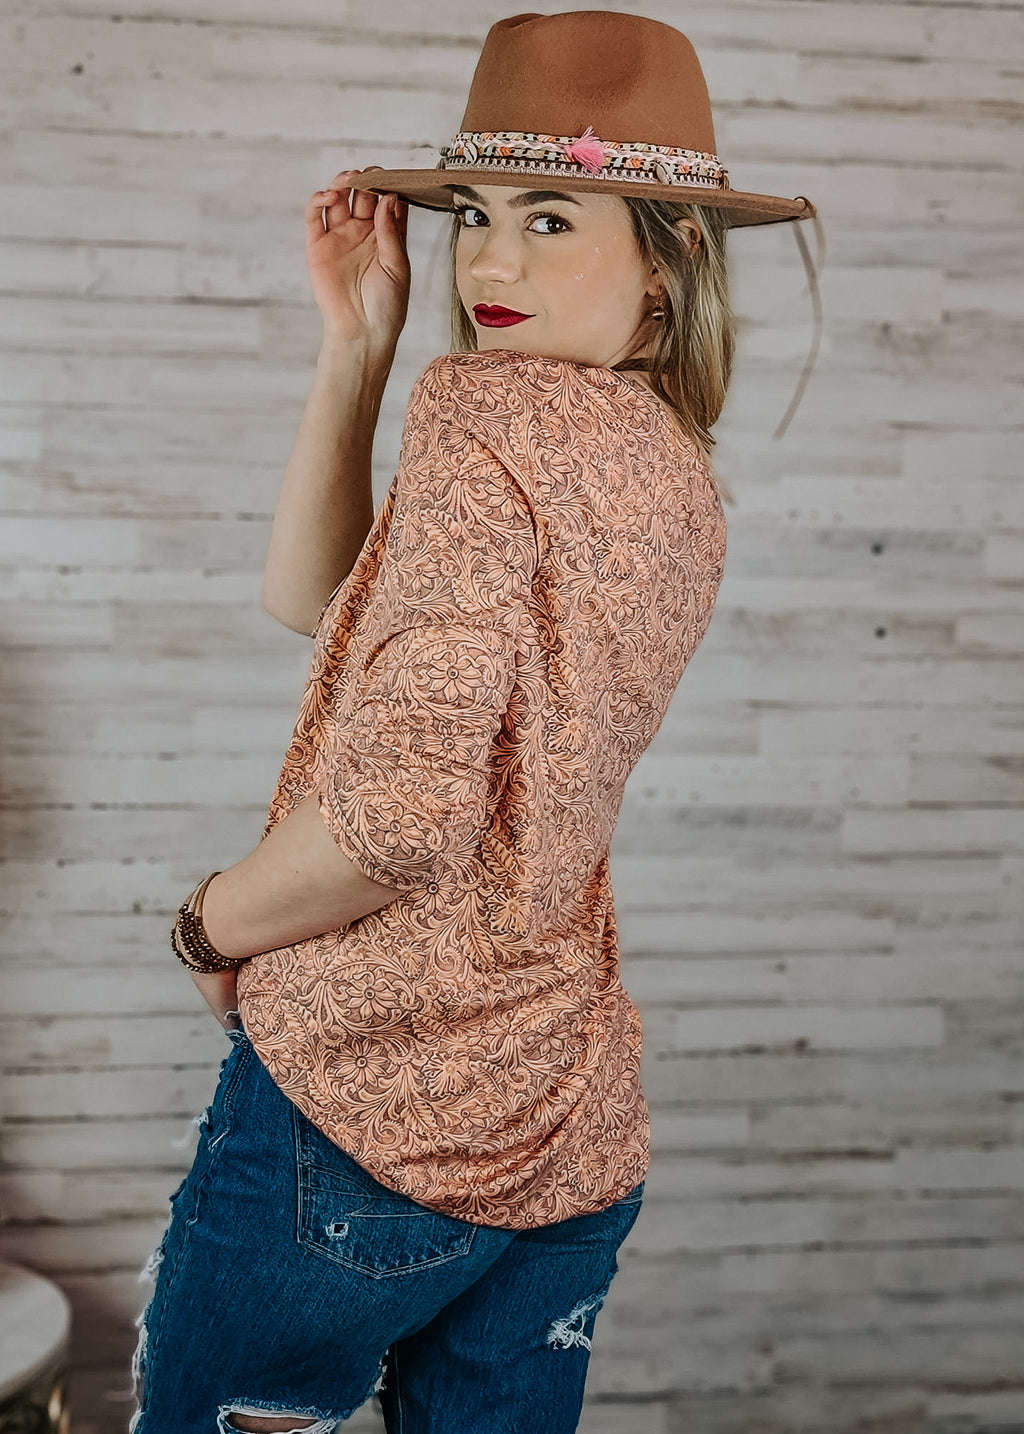 Tooled Leather V Neck 3/4 Sleeve Top on blonde model with accessories